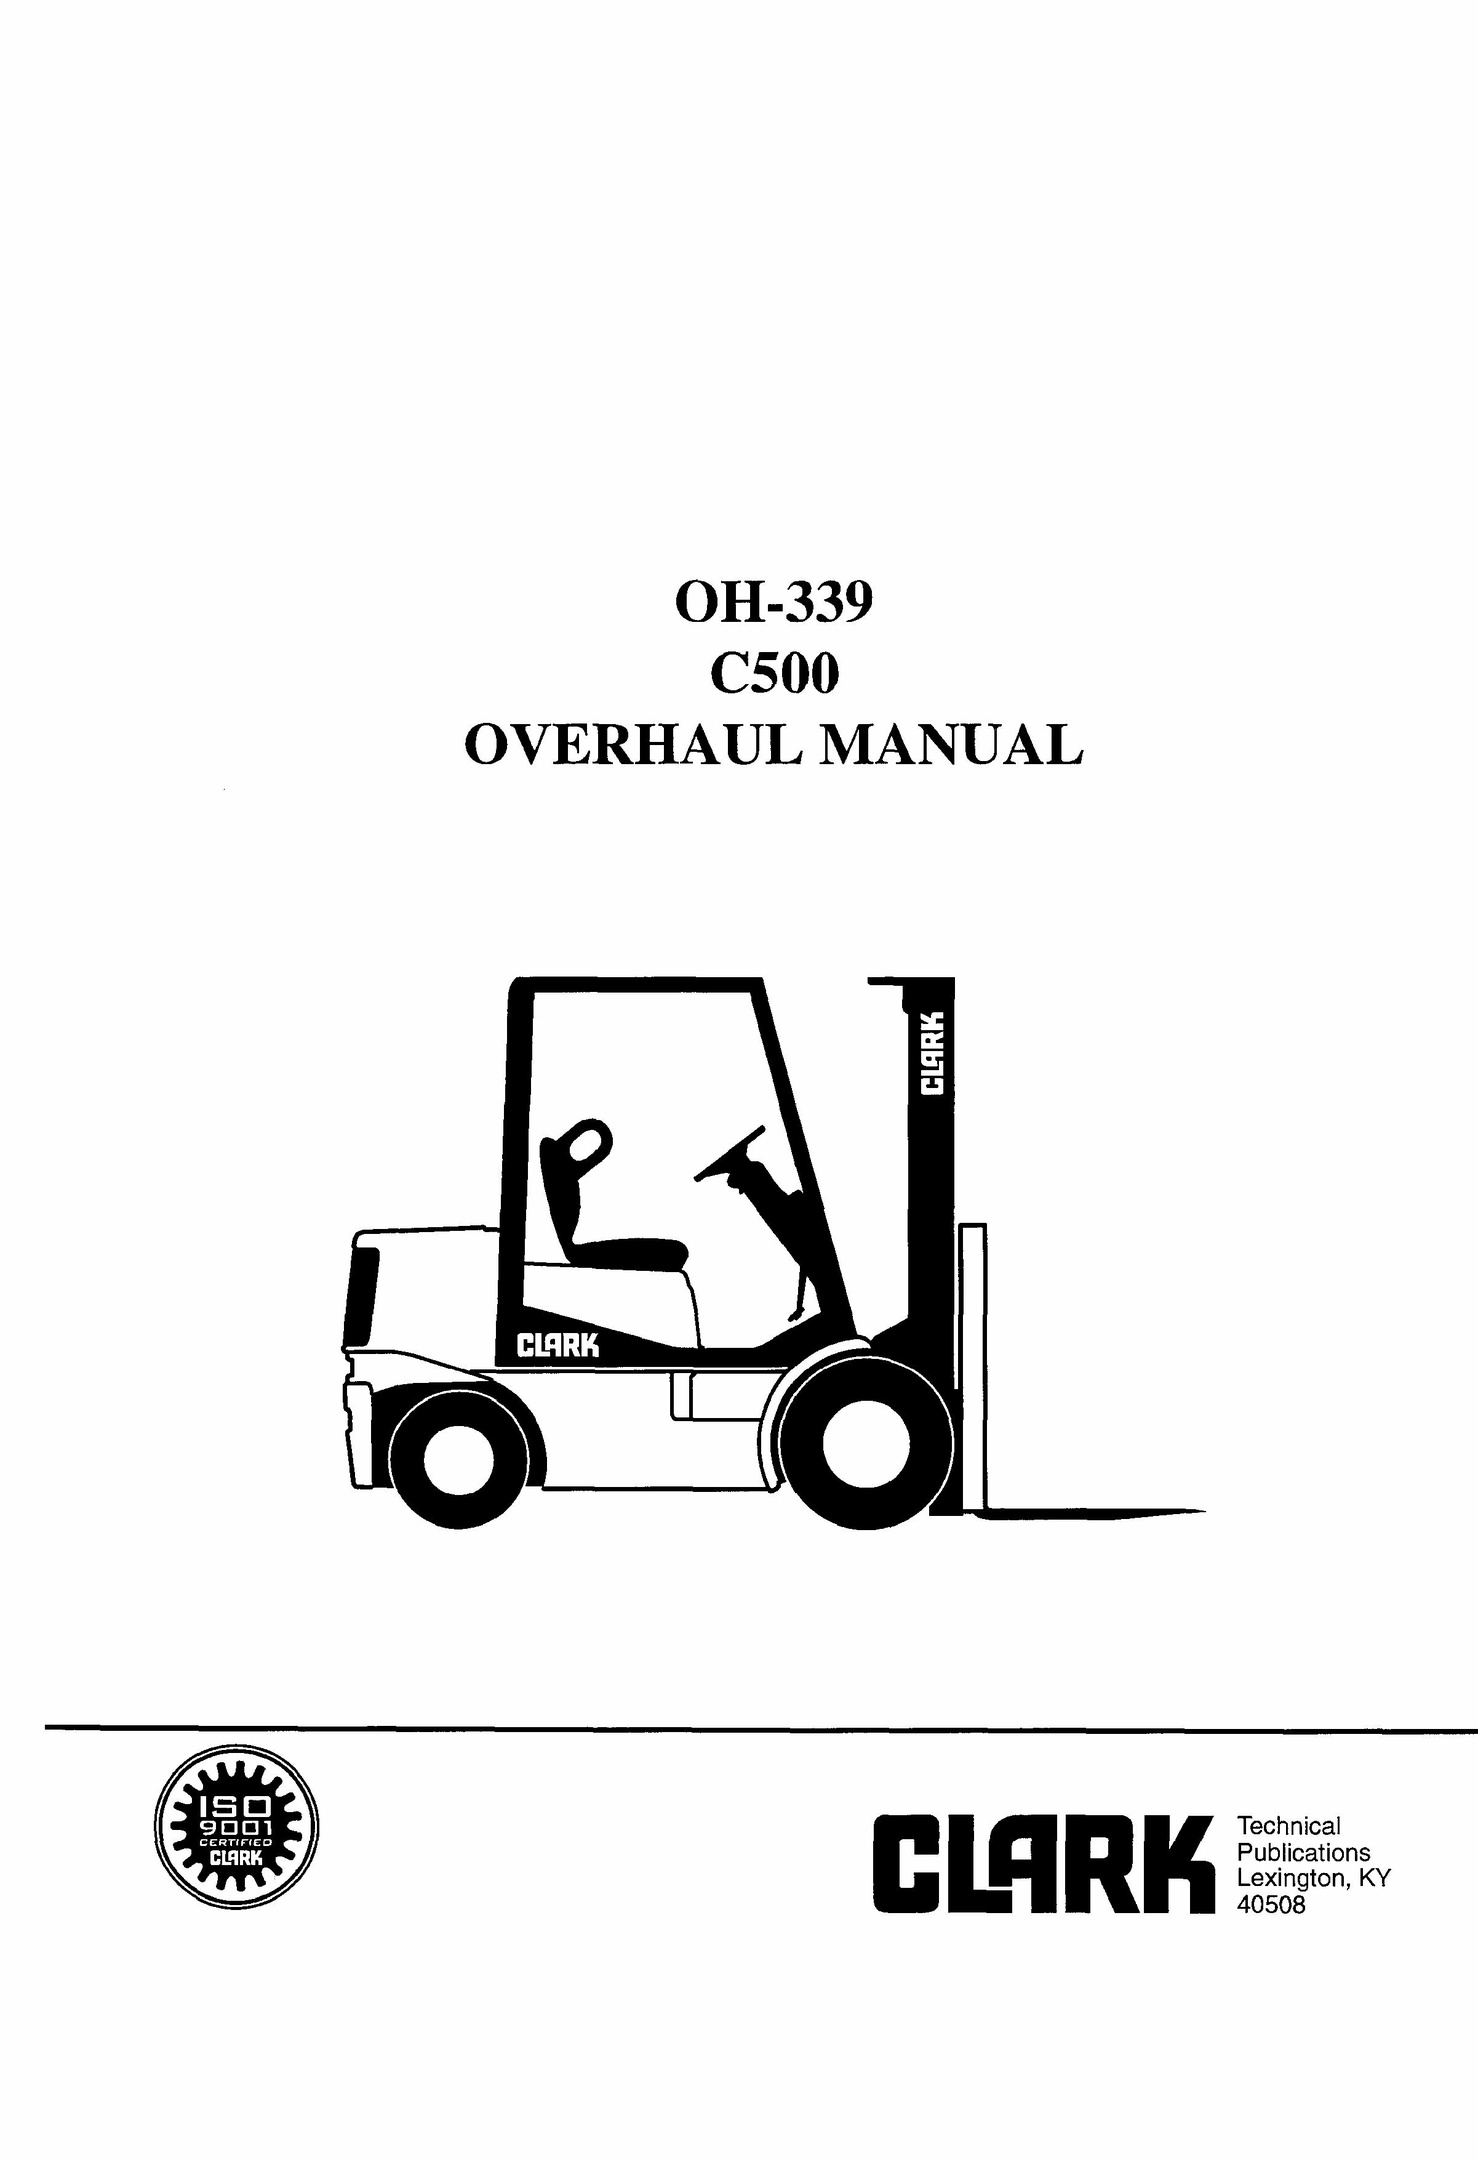 download clark c500 y 30 55 forklift service repair w rh sellfy com clark forklift service manual c500 clark forklift service manual c500